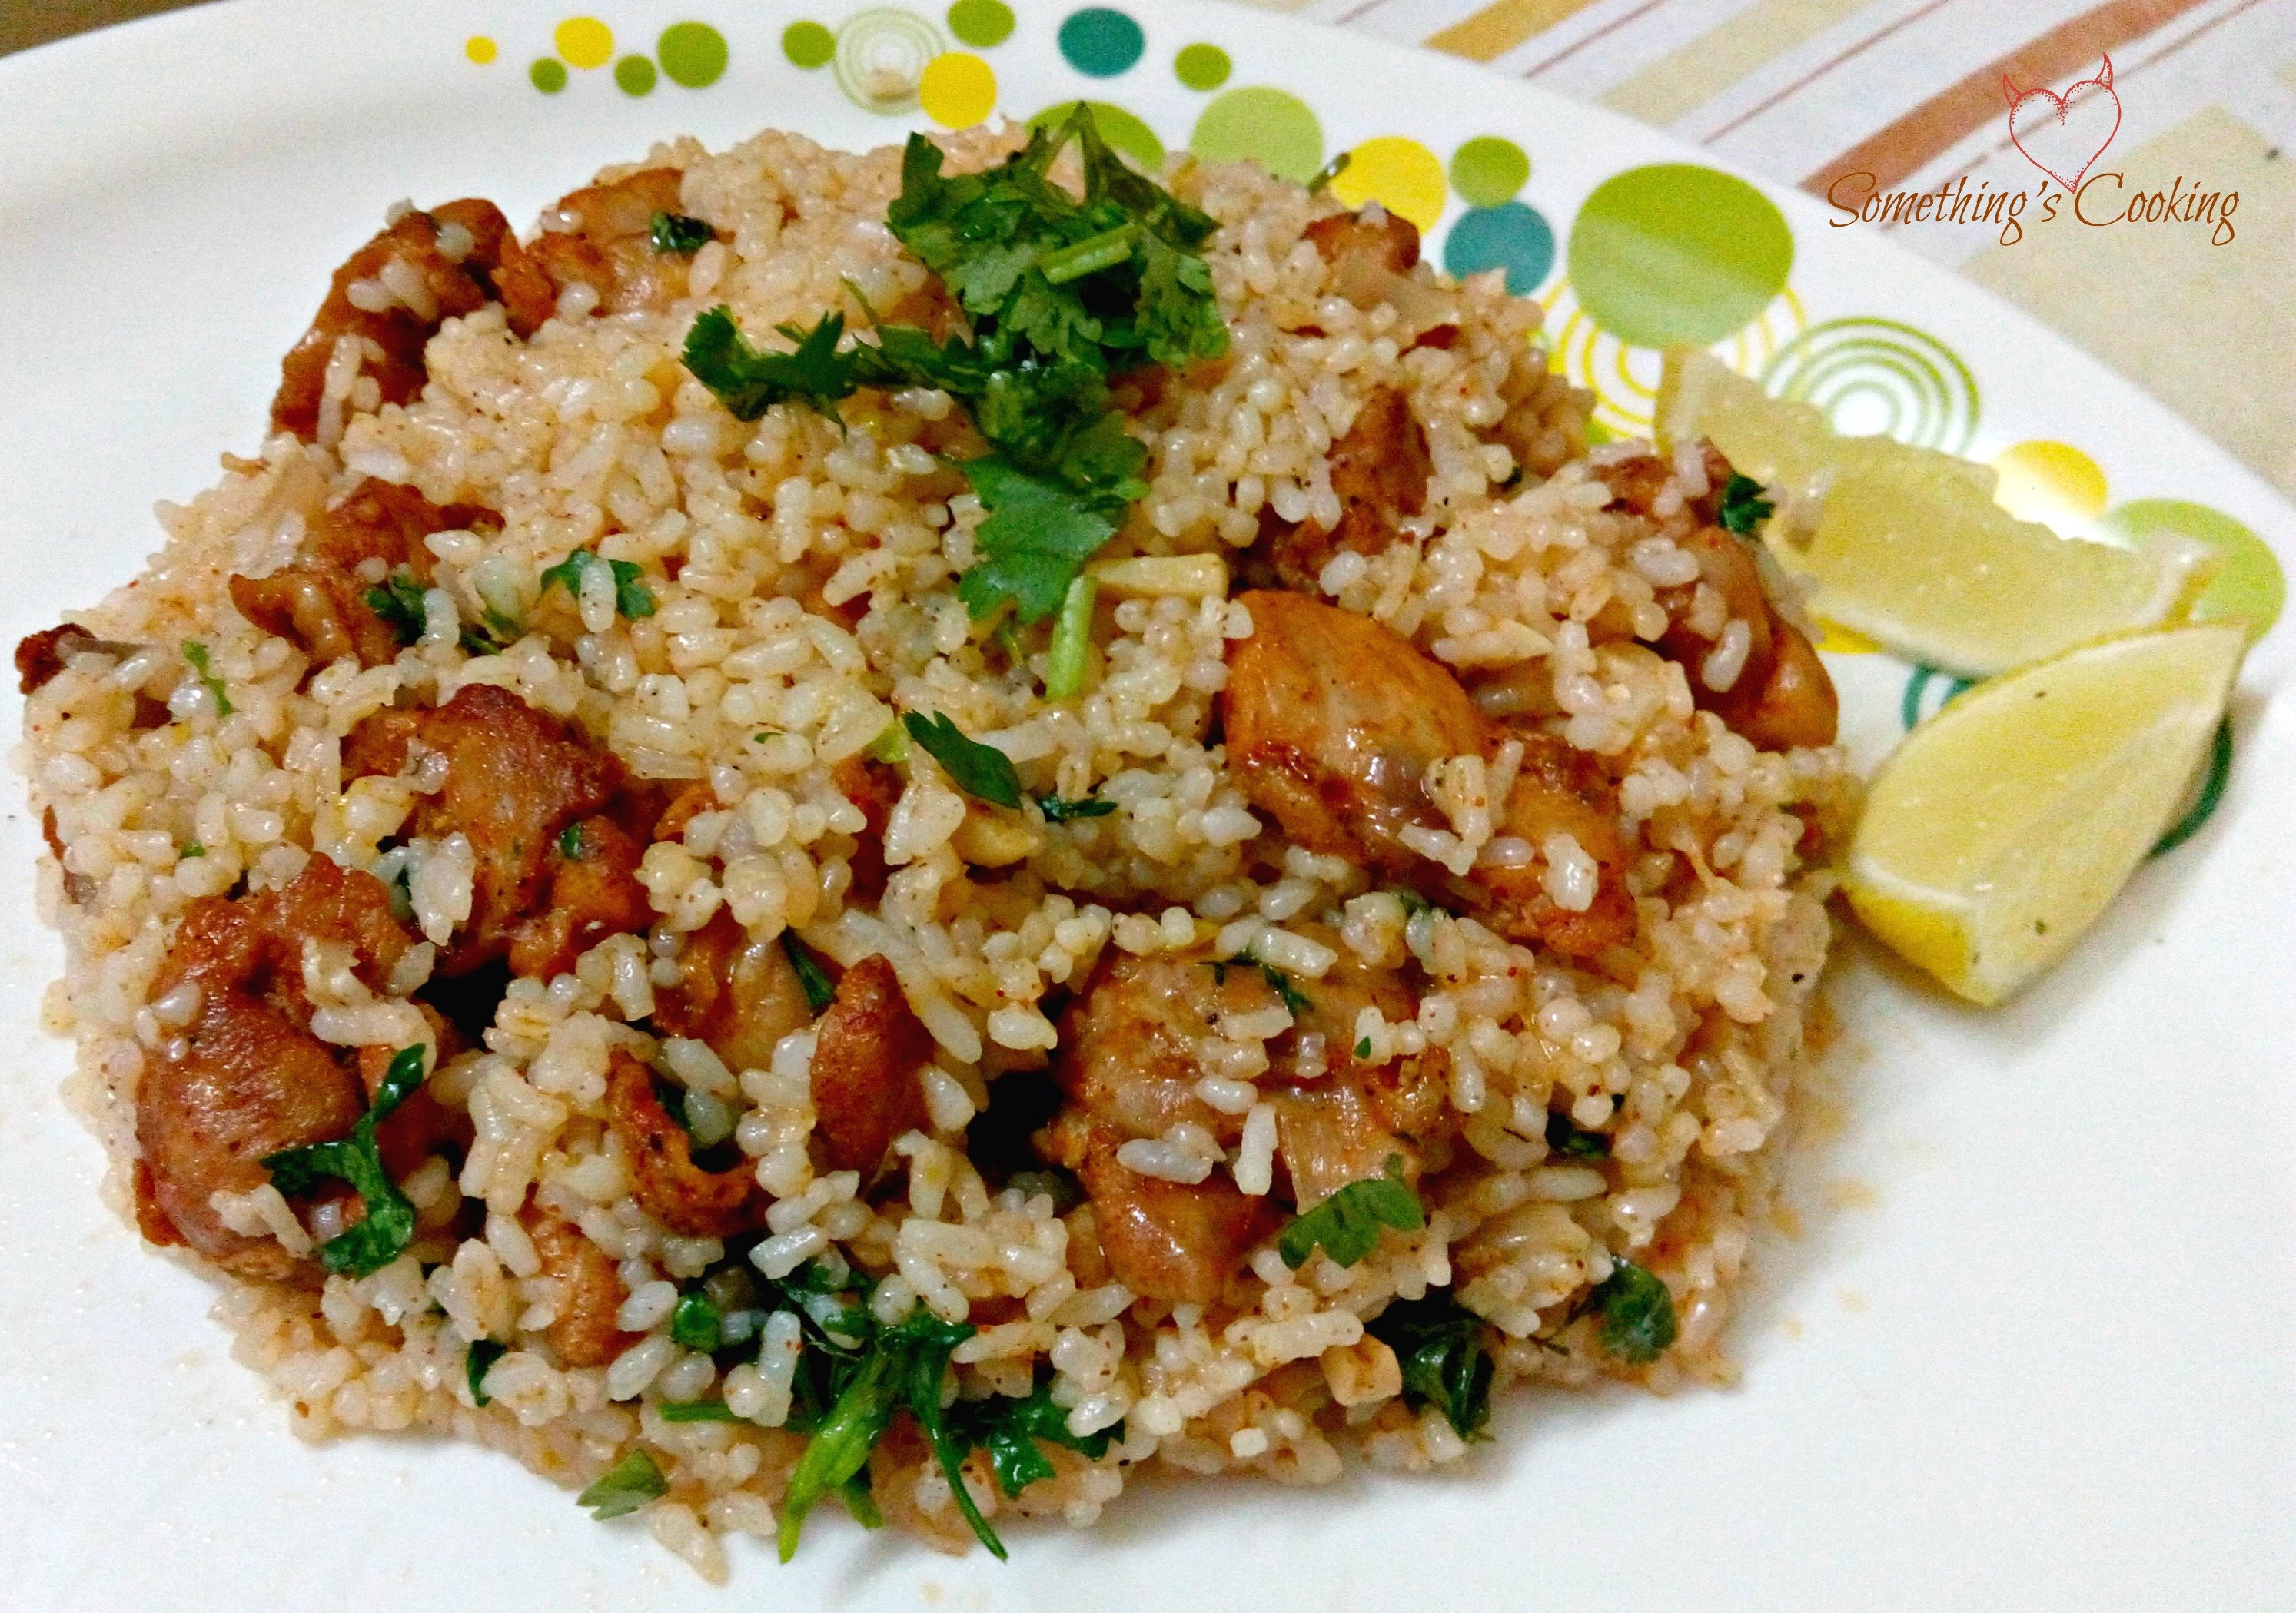 Laura's Cilantro Lime Chicken and Rice